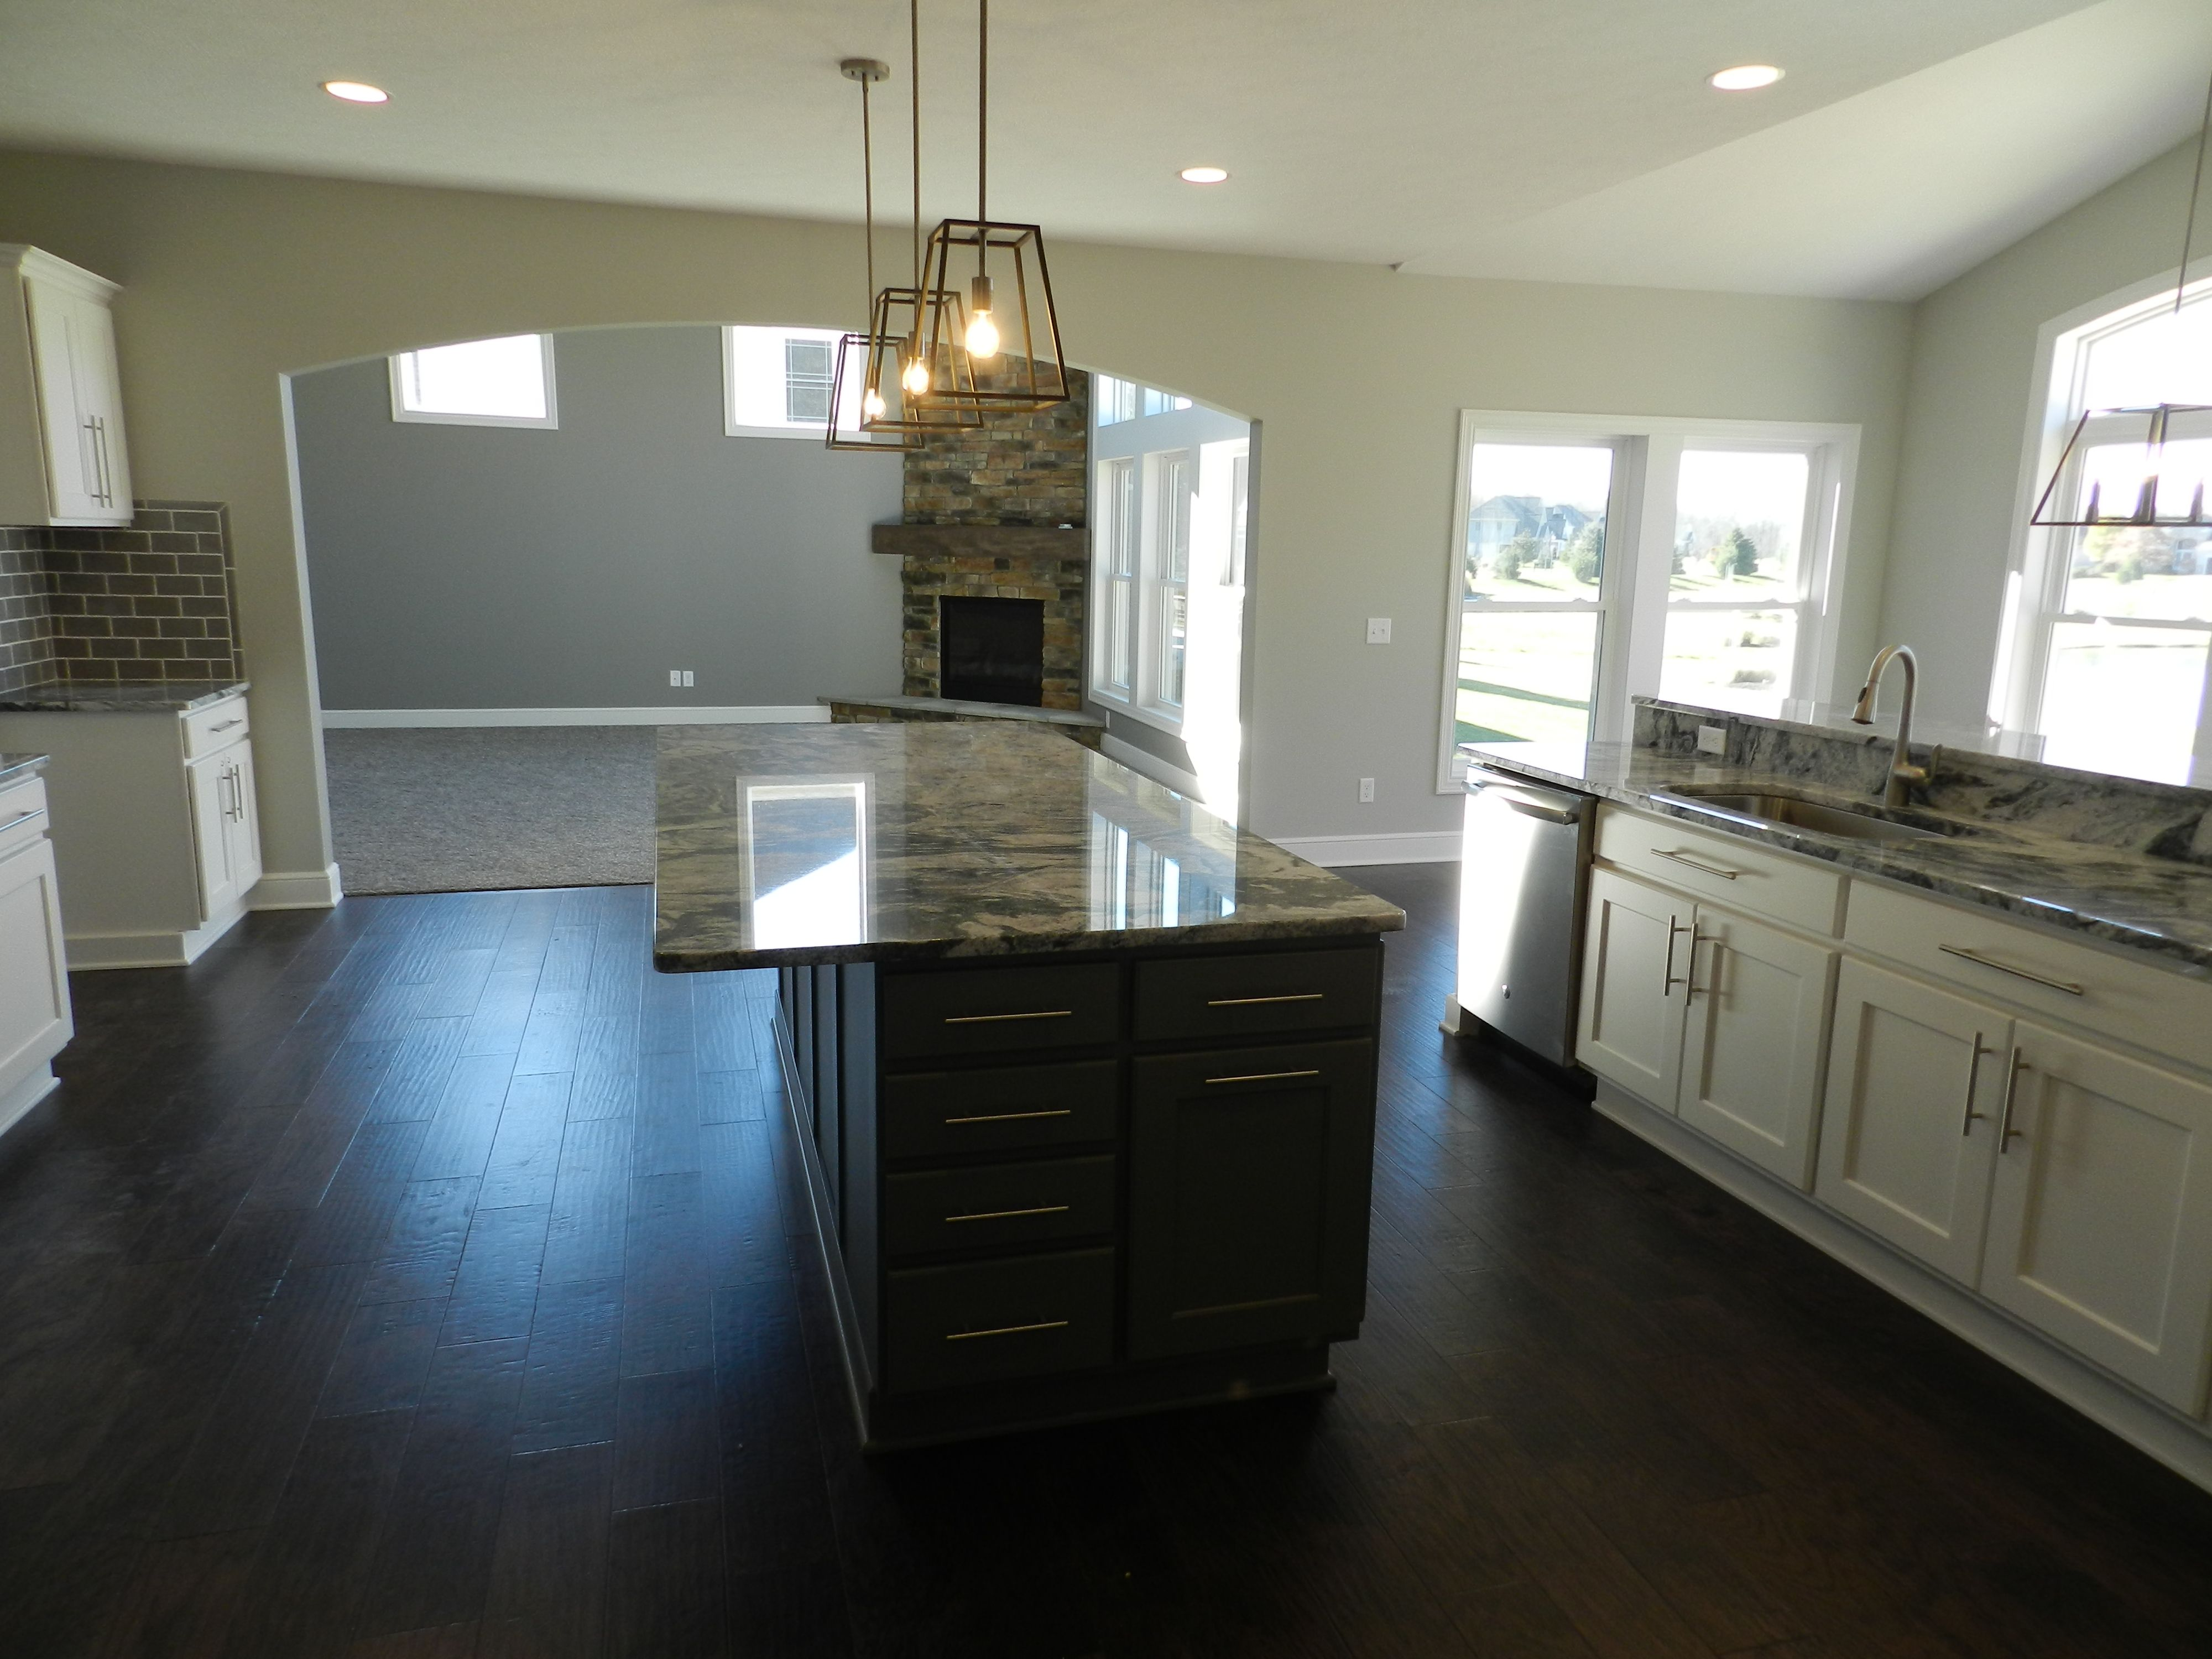 Kitchen featured in the Revere C1 By Classic Homes in Akron, OH